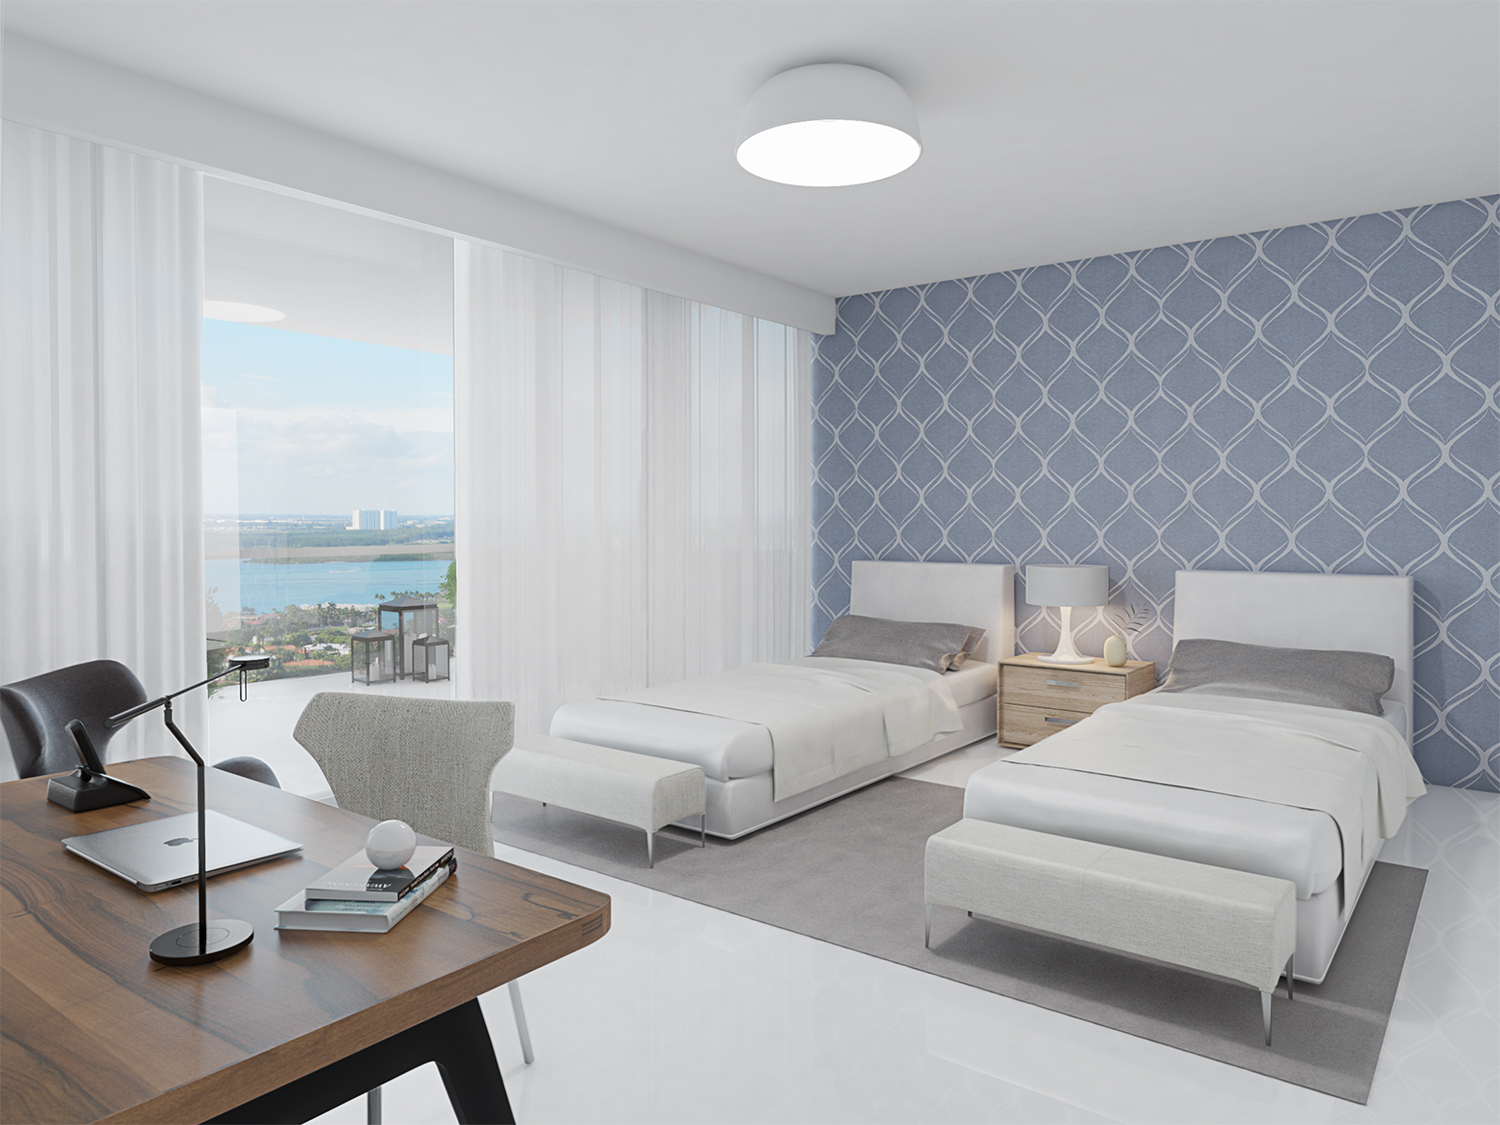 3D Renderings Miami